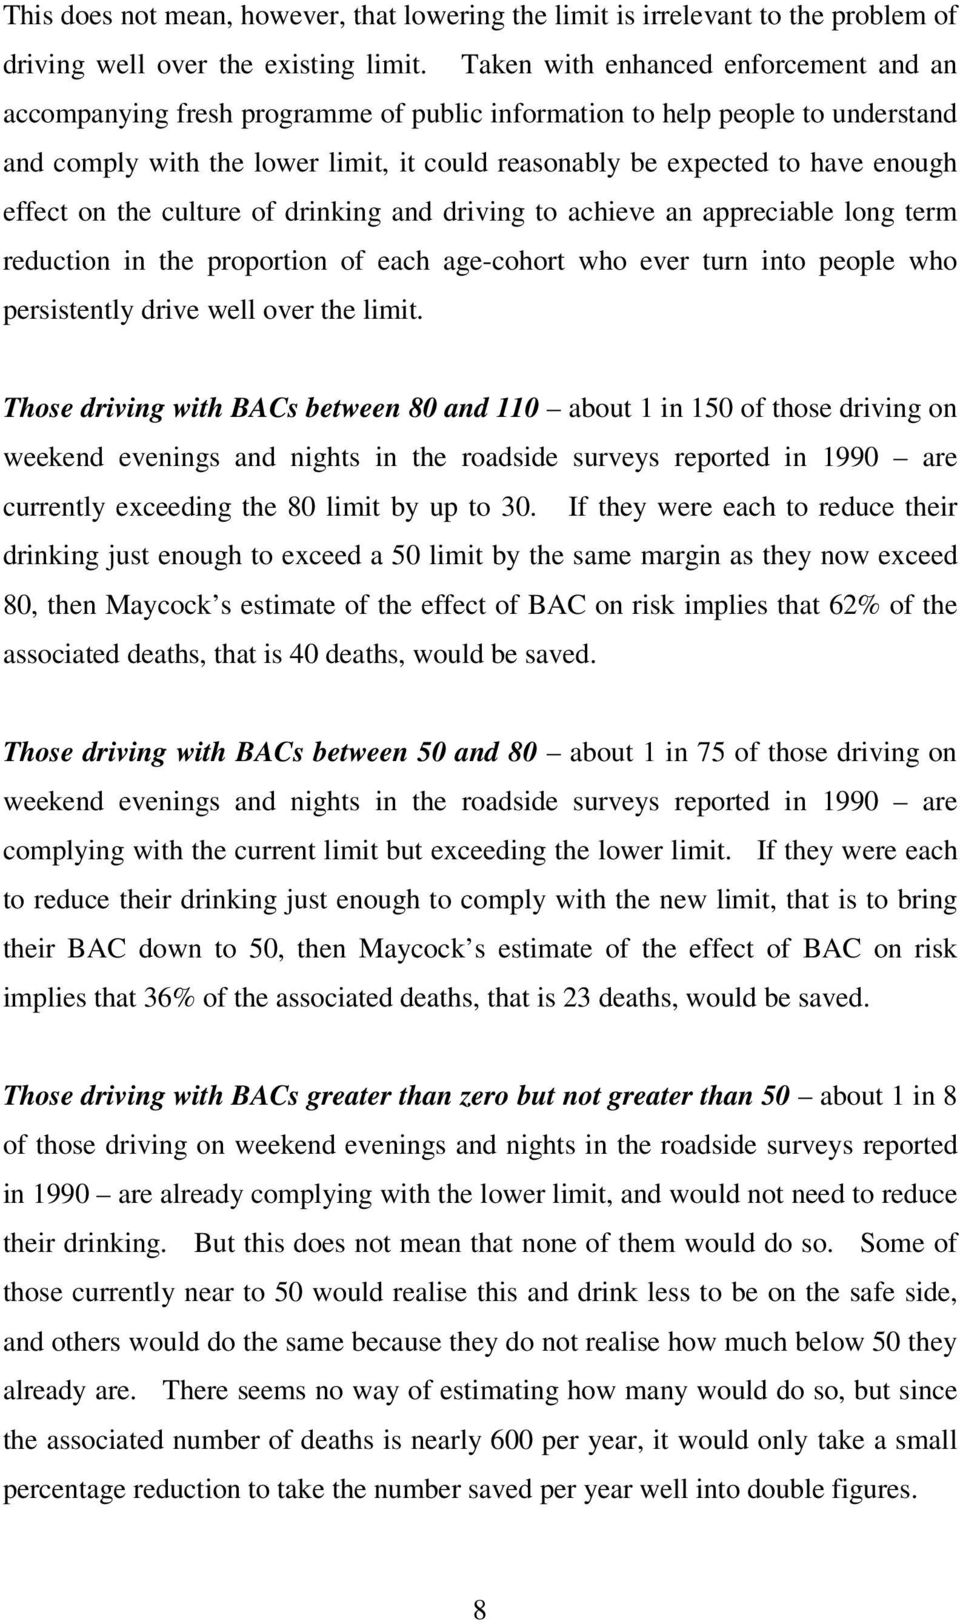 effect on the culture of drinking and driving to achieve an appreciable long term reduction in the proportion of each age-cohort who ever turn into people who persistently drive well over the limit.